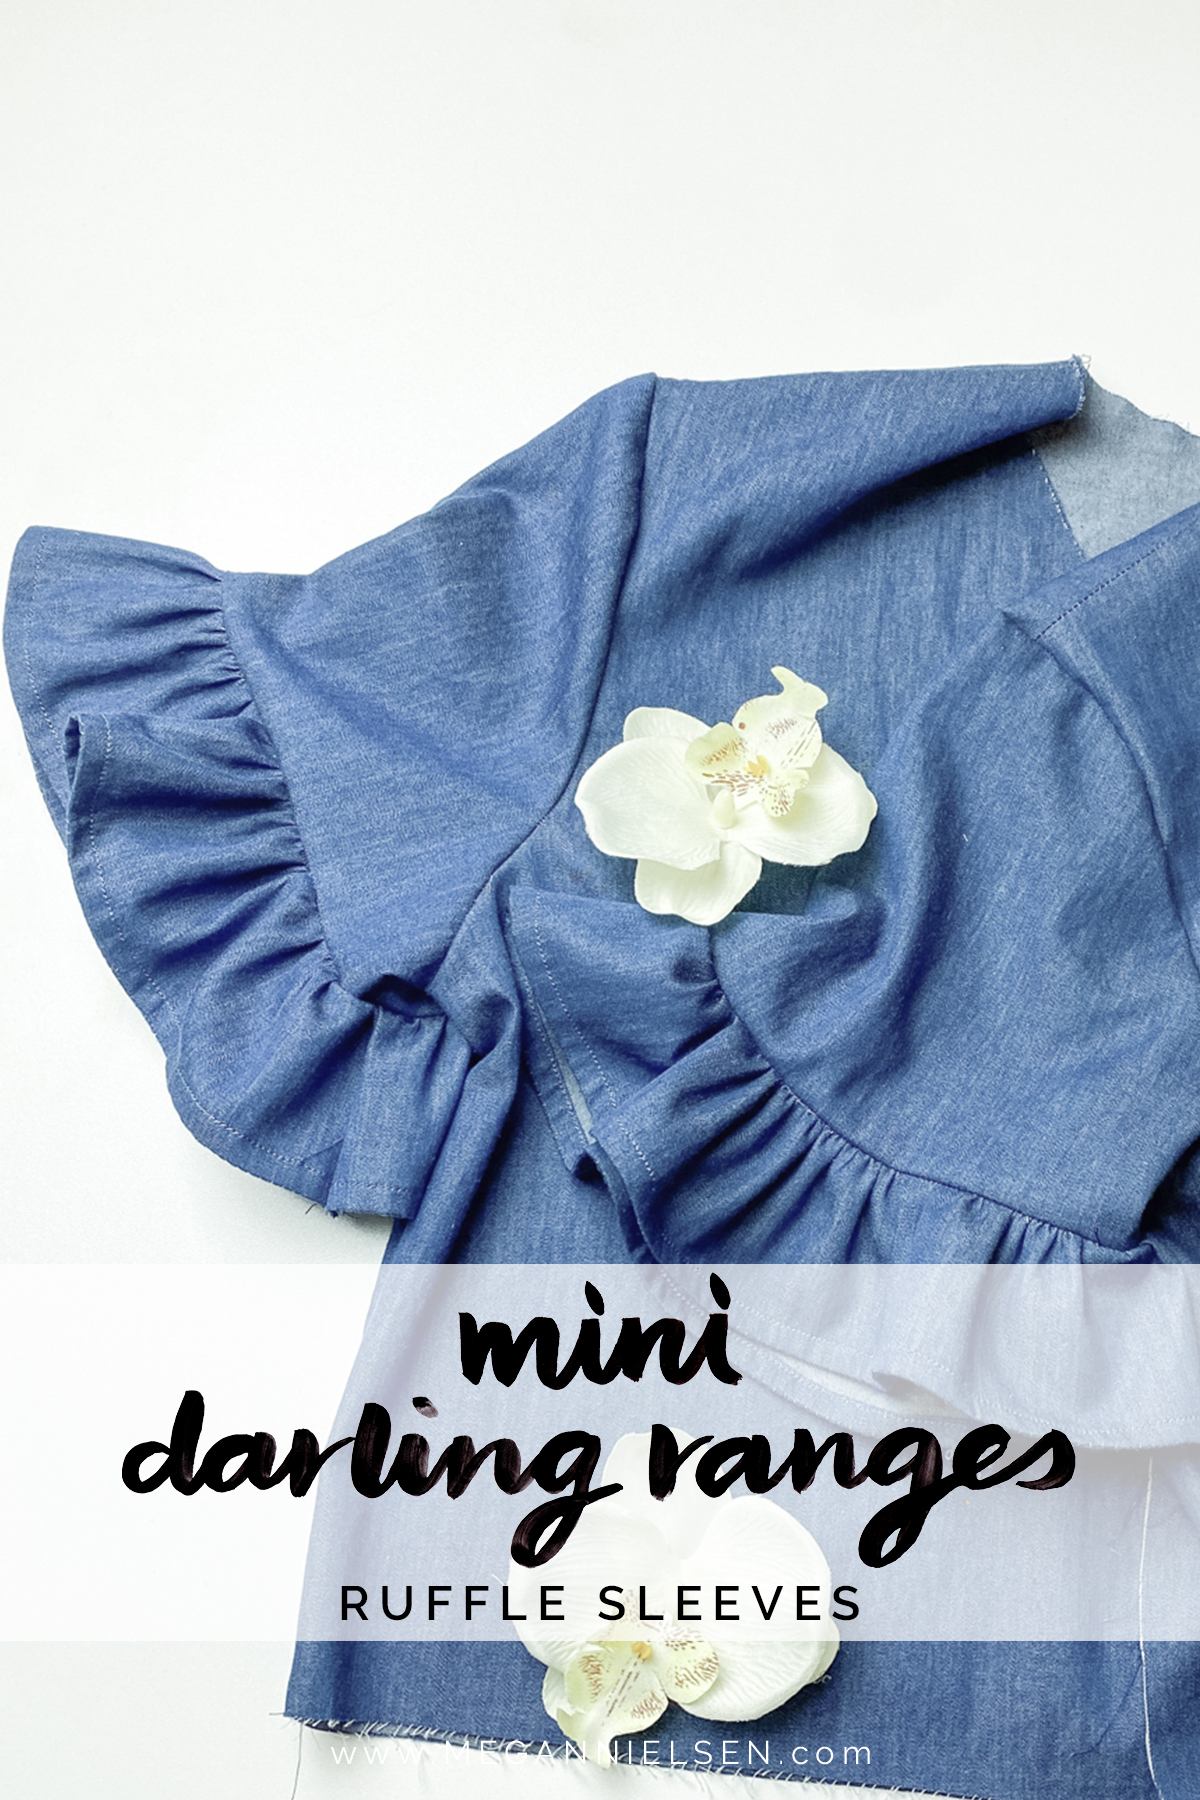 How to Add Ruffle Sleeves to the Mini Darling Ranges Dress